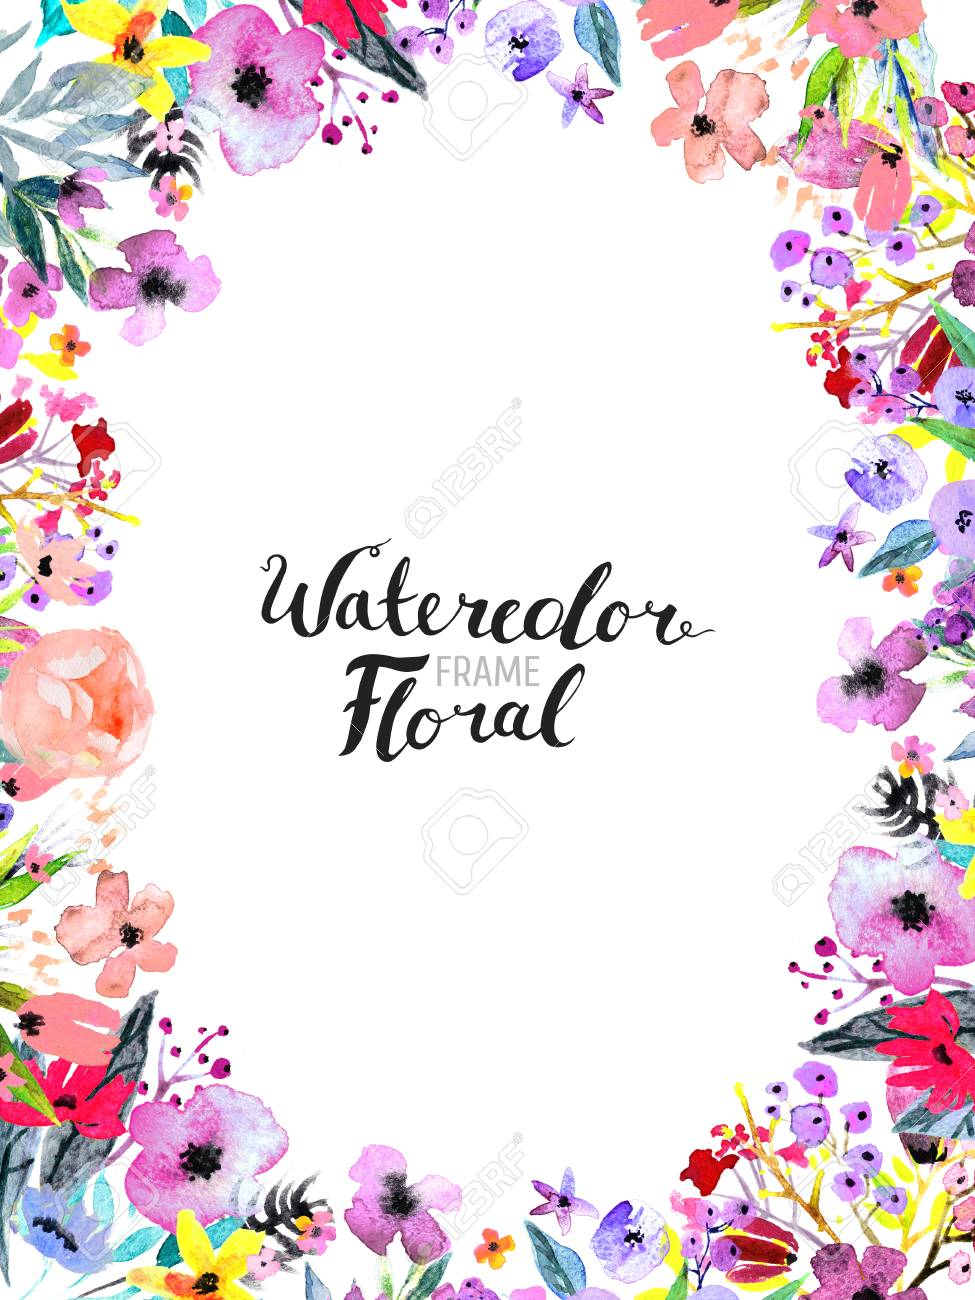 Watercolor floral background hand painted border of flowers hand painted border of flowers good for invitations and greeting cards frame isolated on white and brush lettering rose poppy and peony illustration m4hsunfo